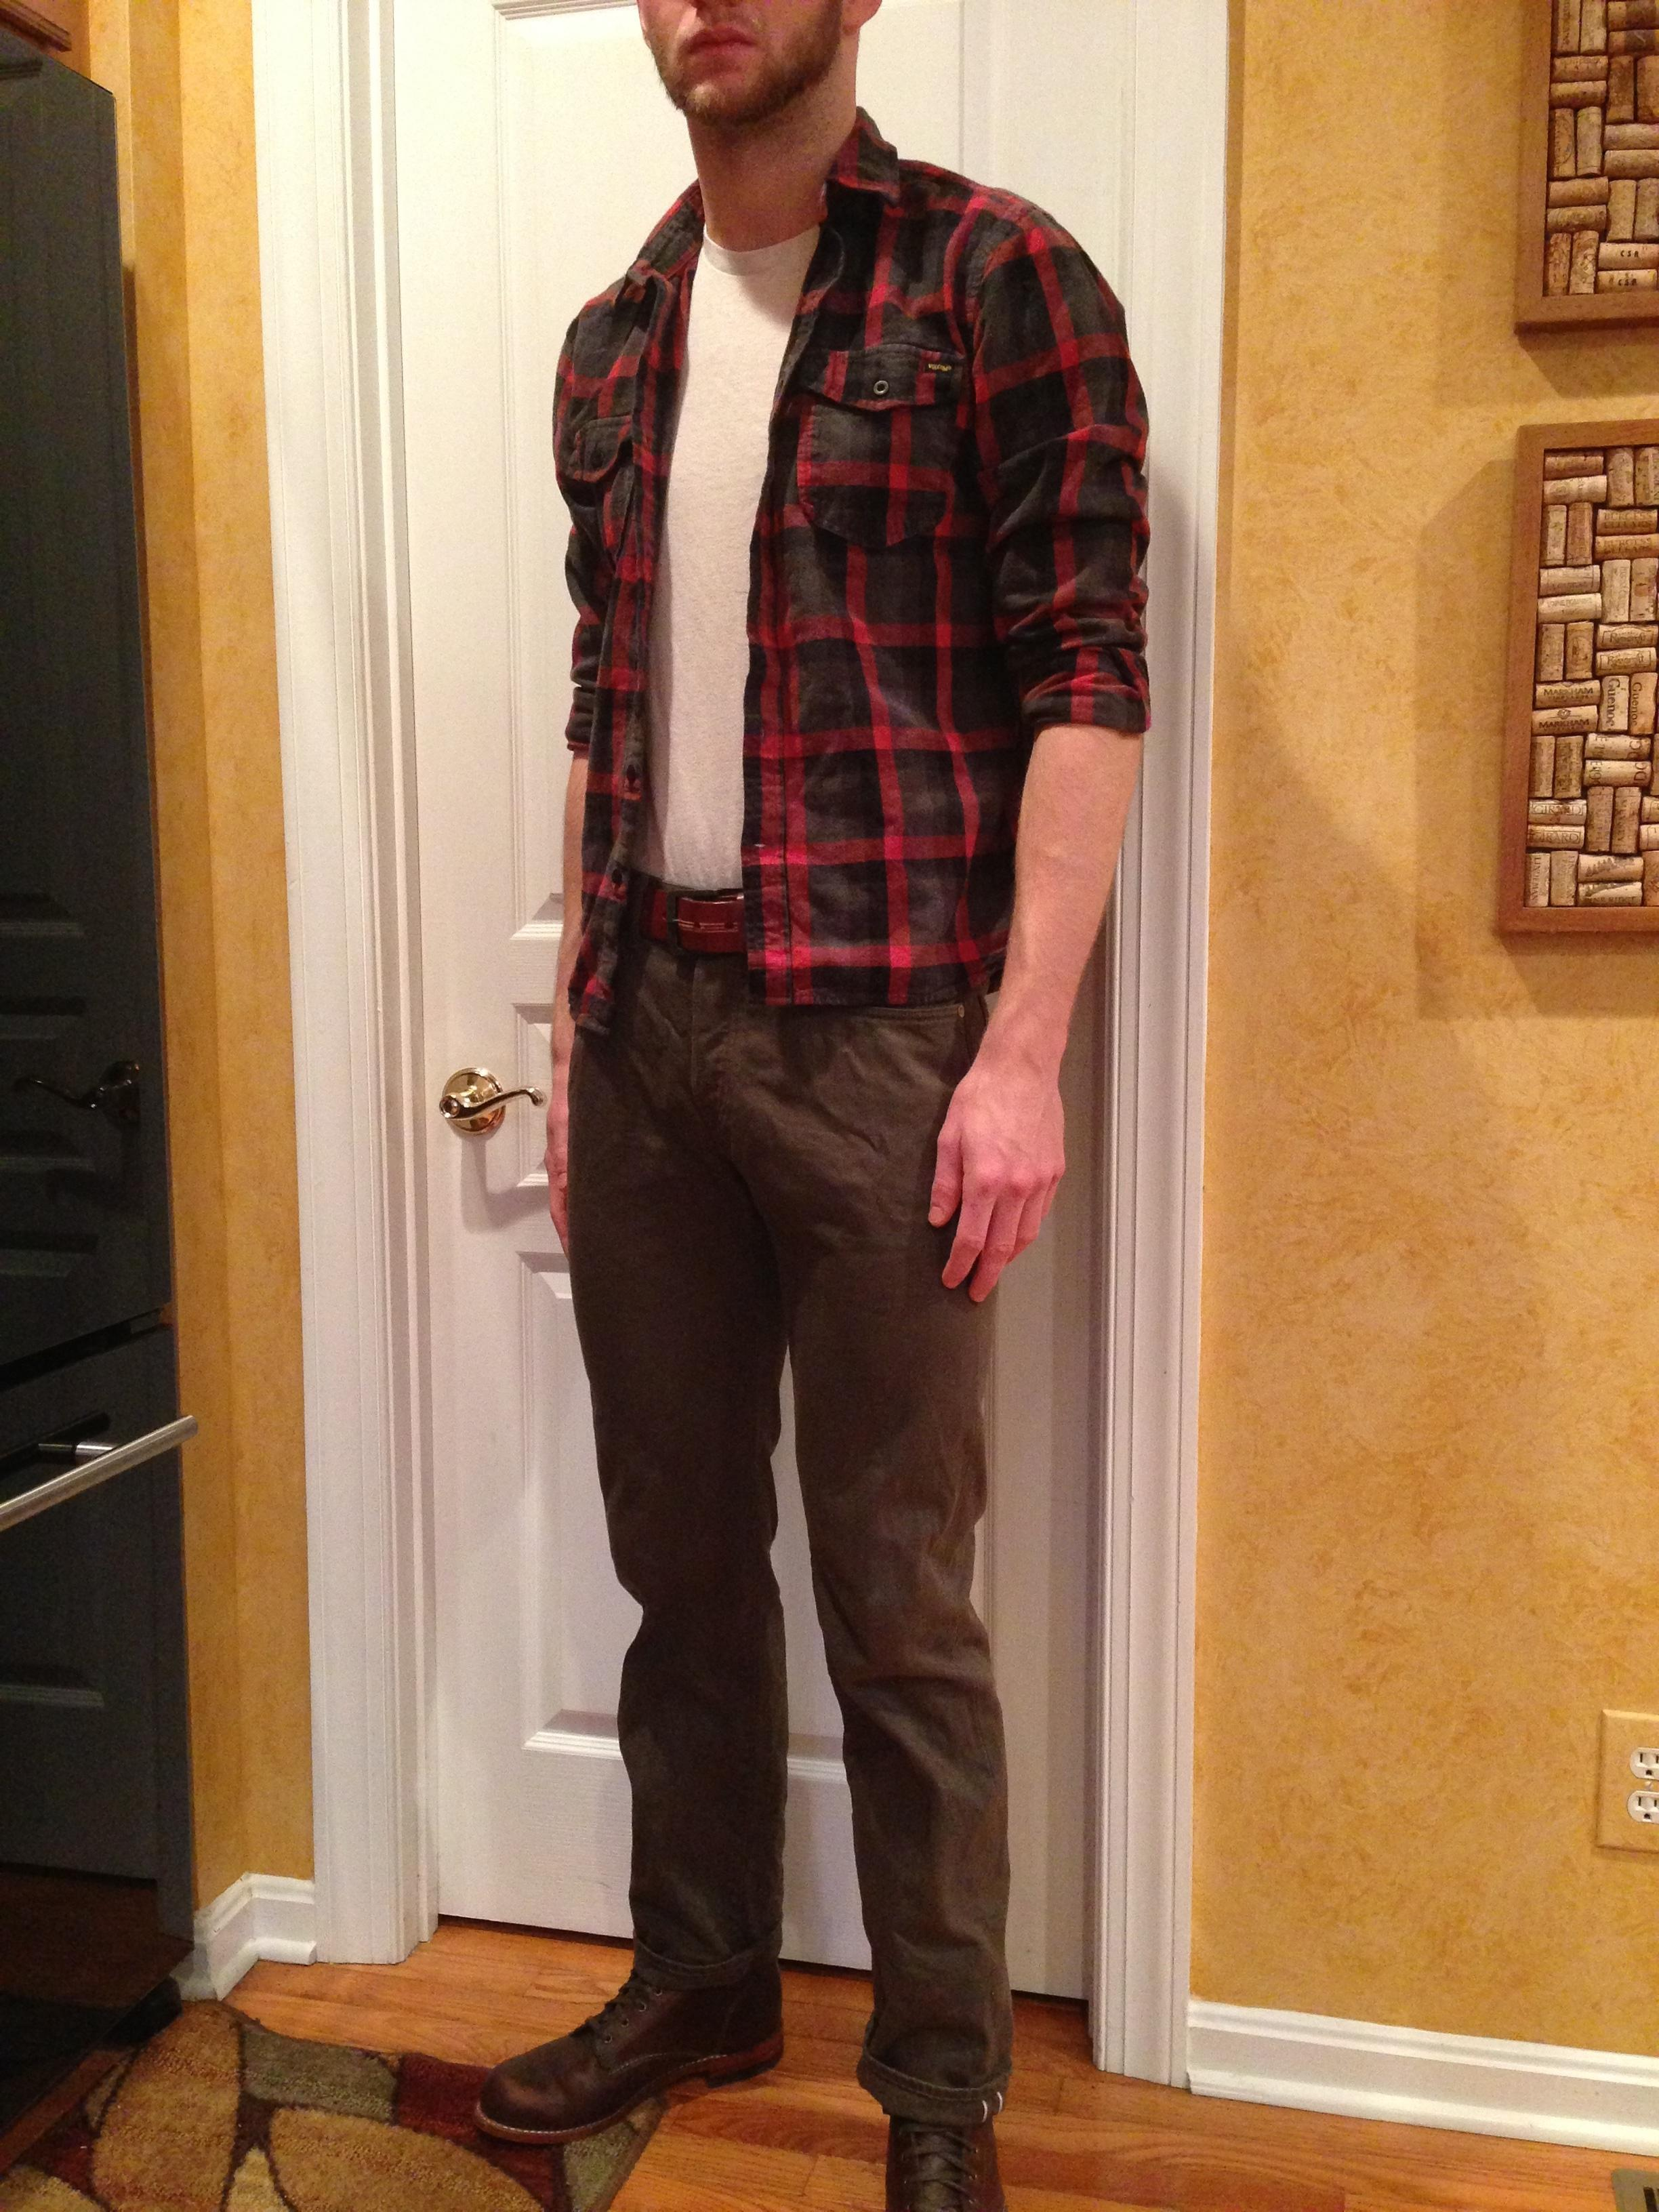 The most lumbersexual #vintage fit pic I could find.More like the  Scrawny  Paper Towels guy. Joke!